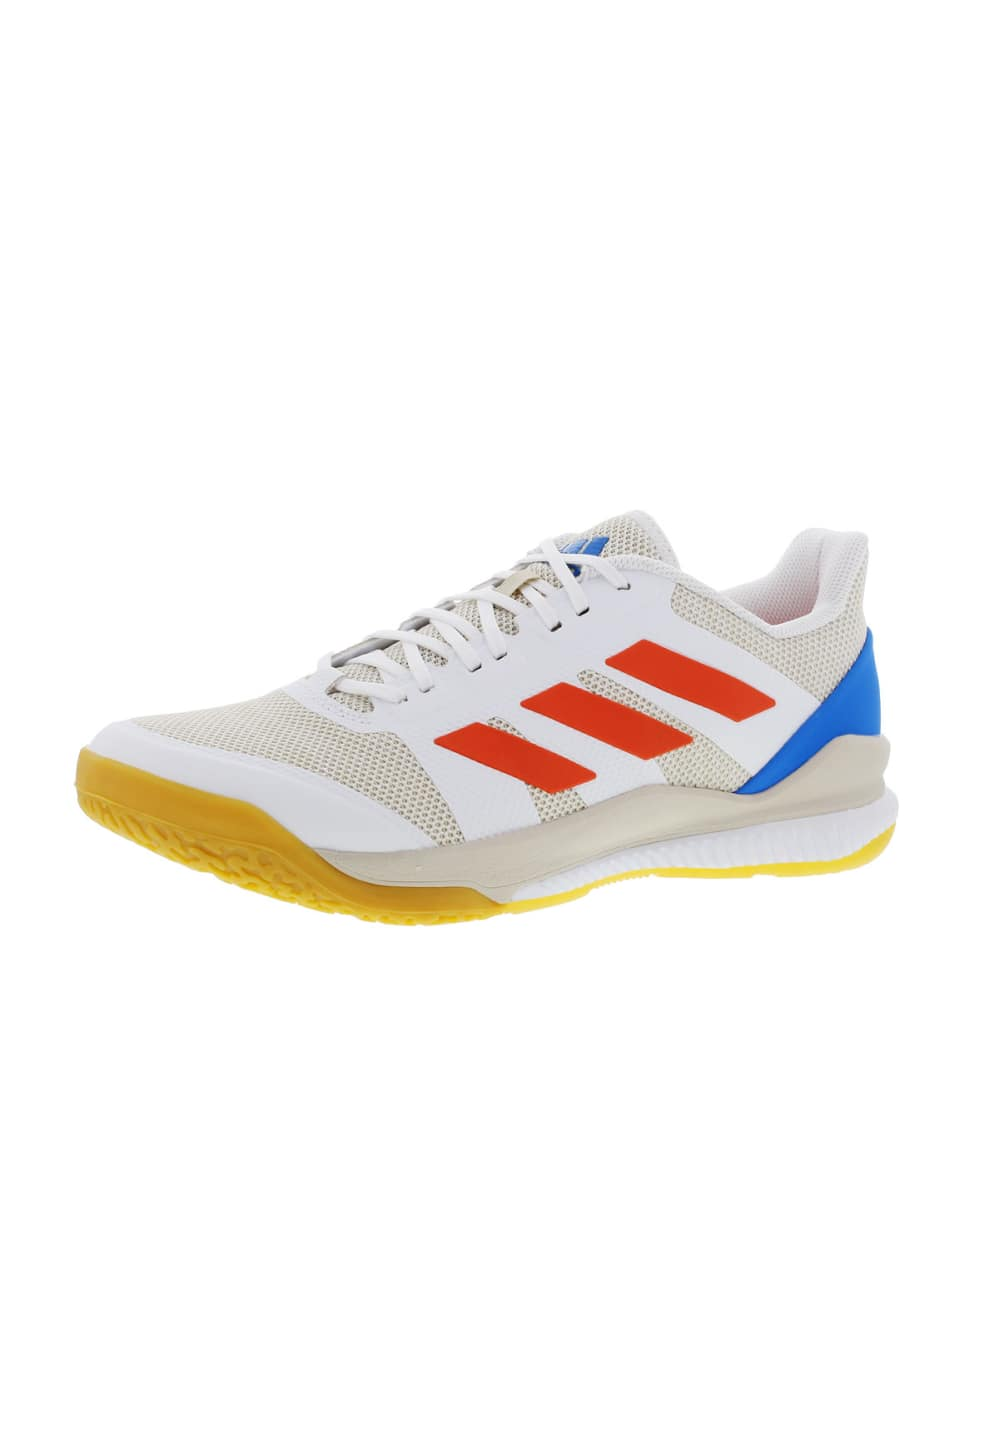 fa3dfec80d8 adidas Stabil Bounce - Handball shoes for Men - White